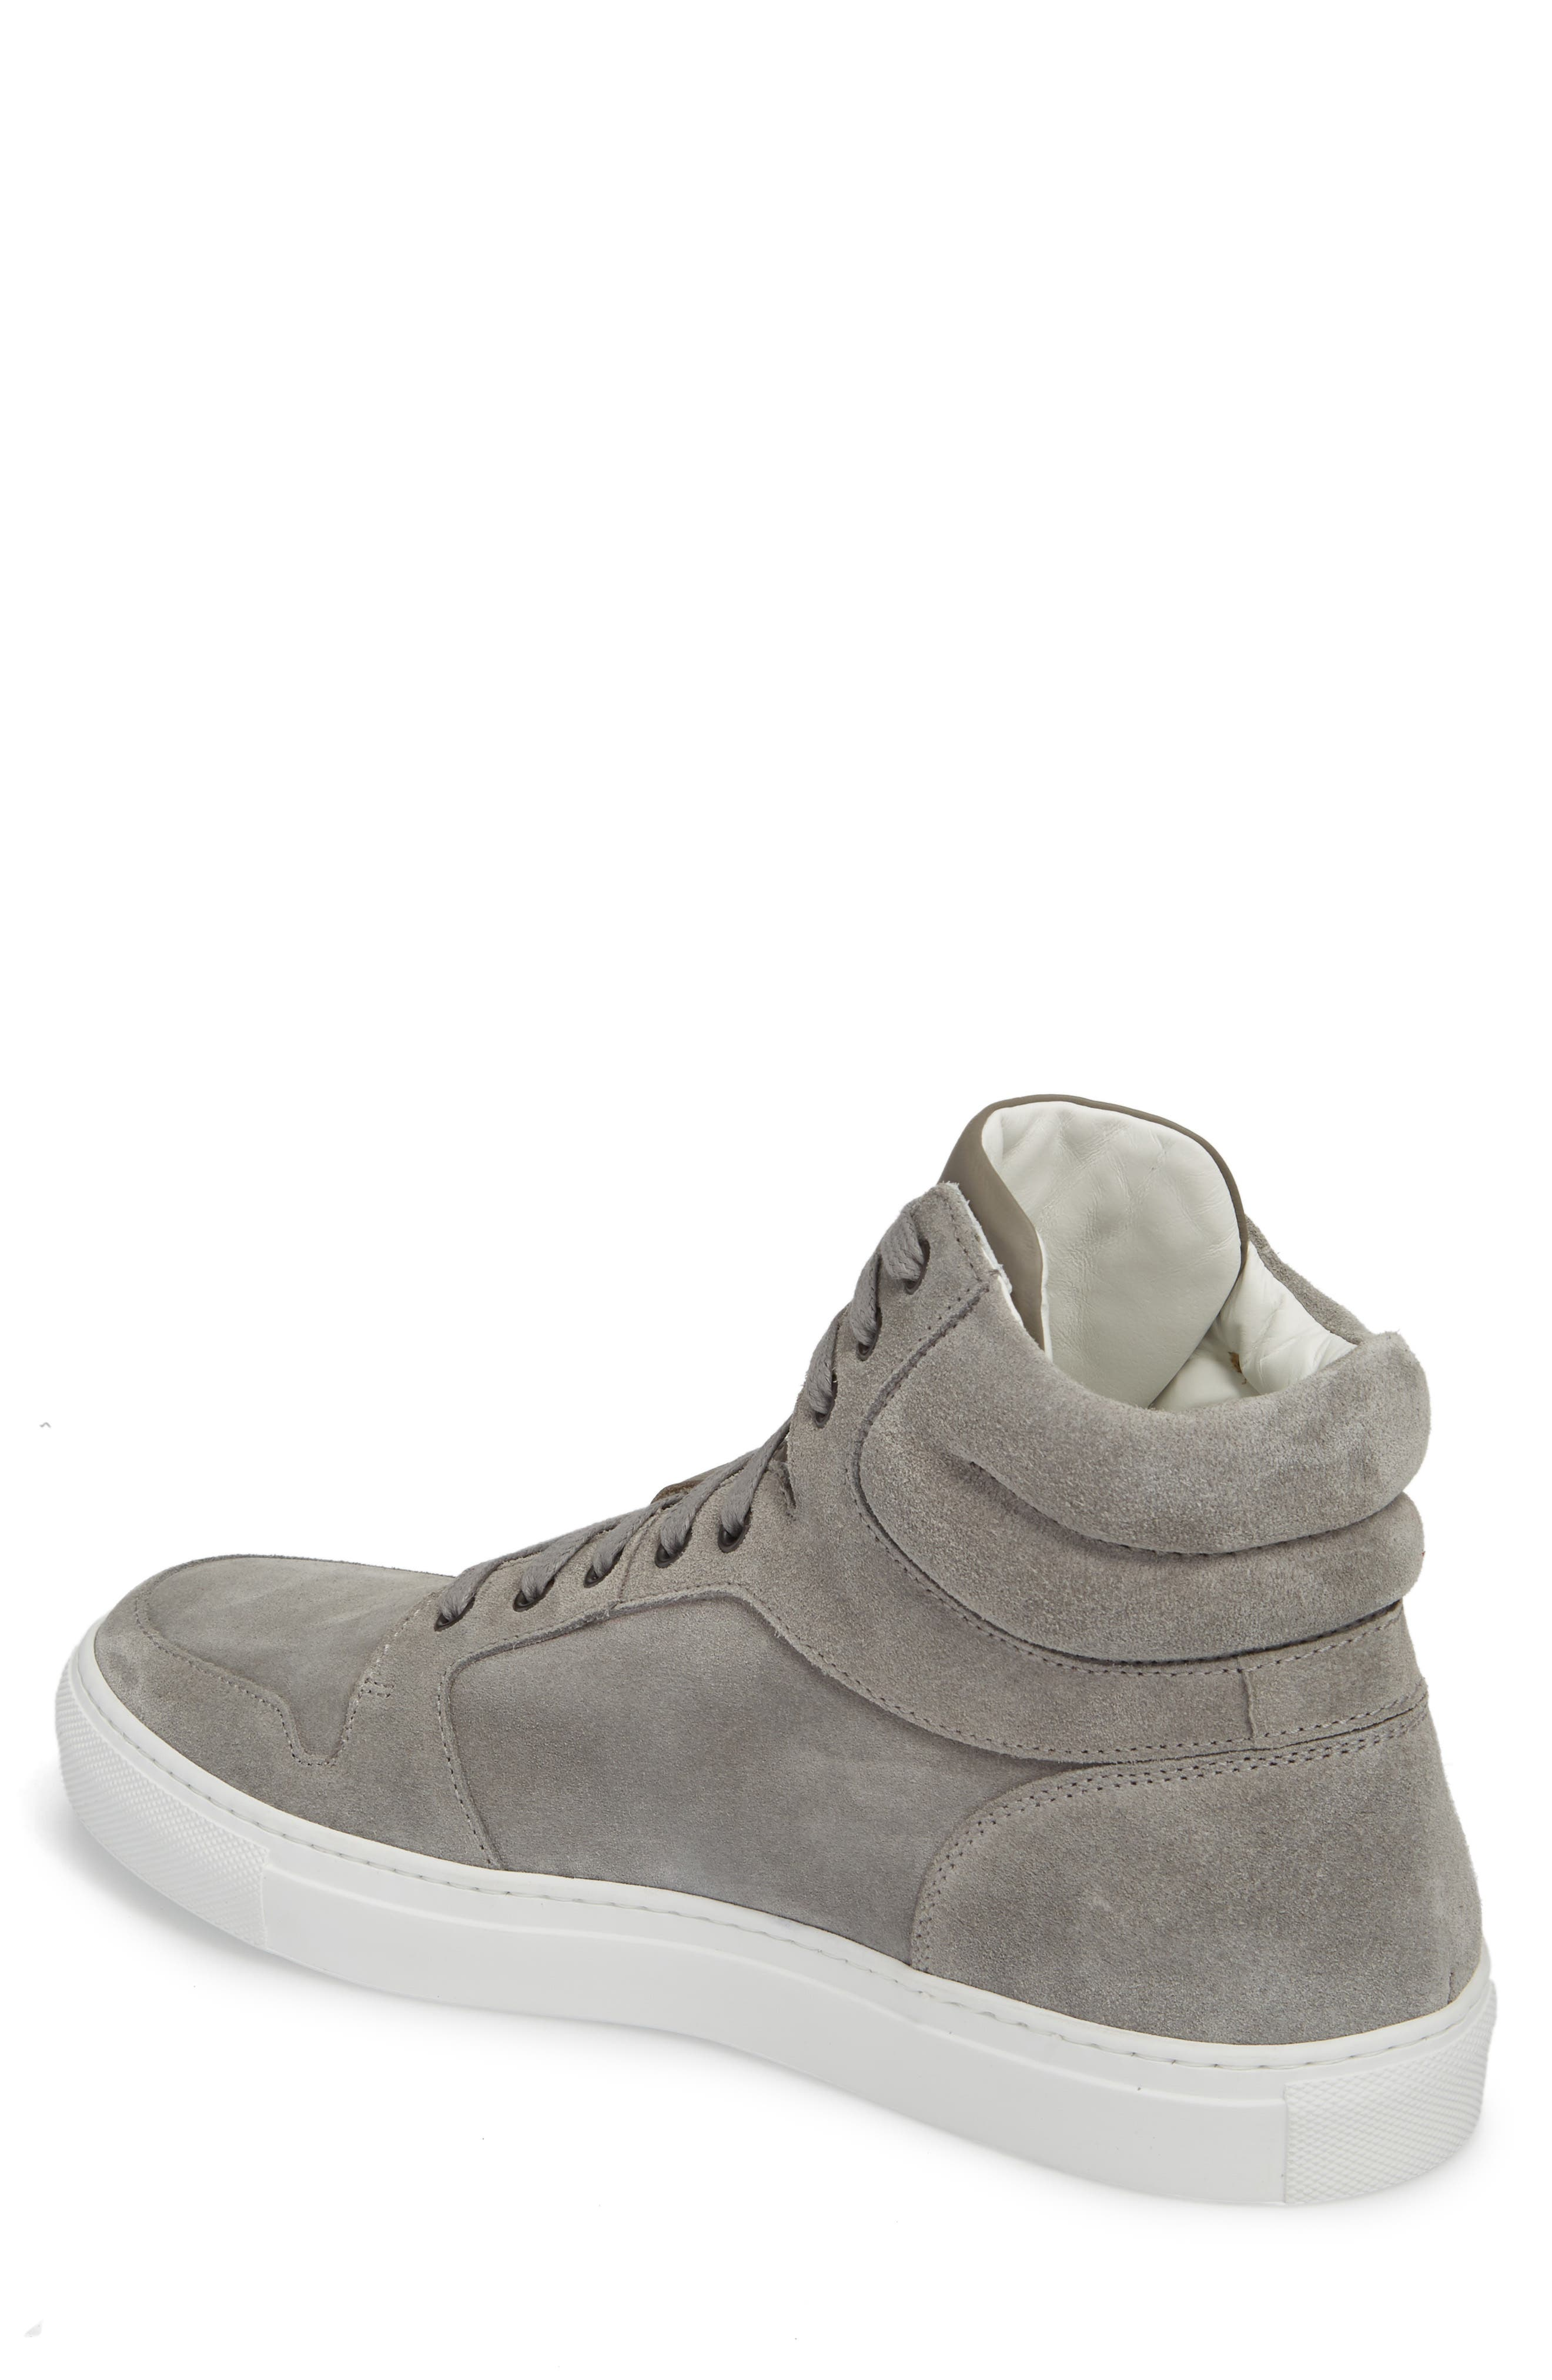 Belmont High Top Sneaker,                             Alternate thumbnail 2, color,                             034